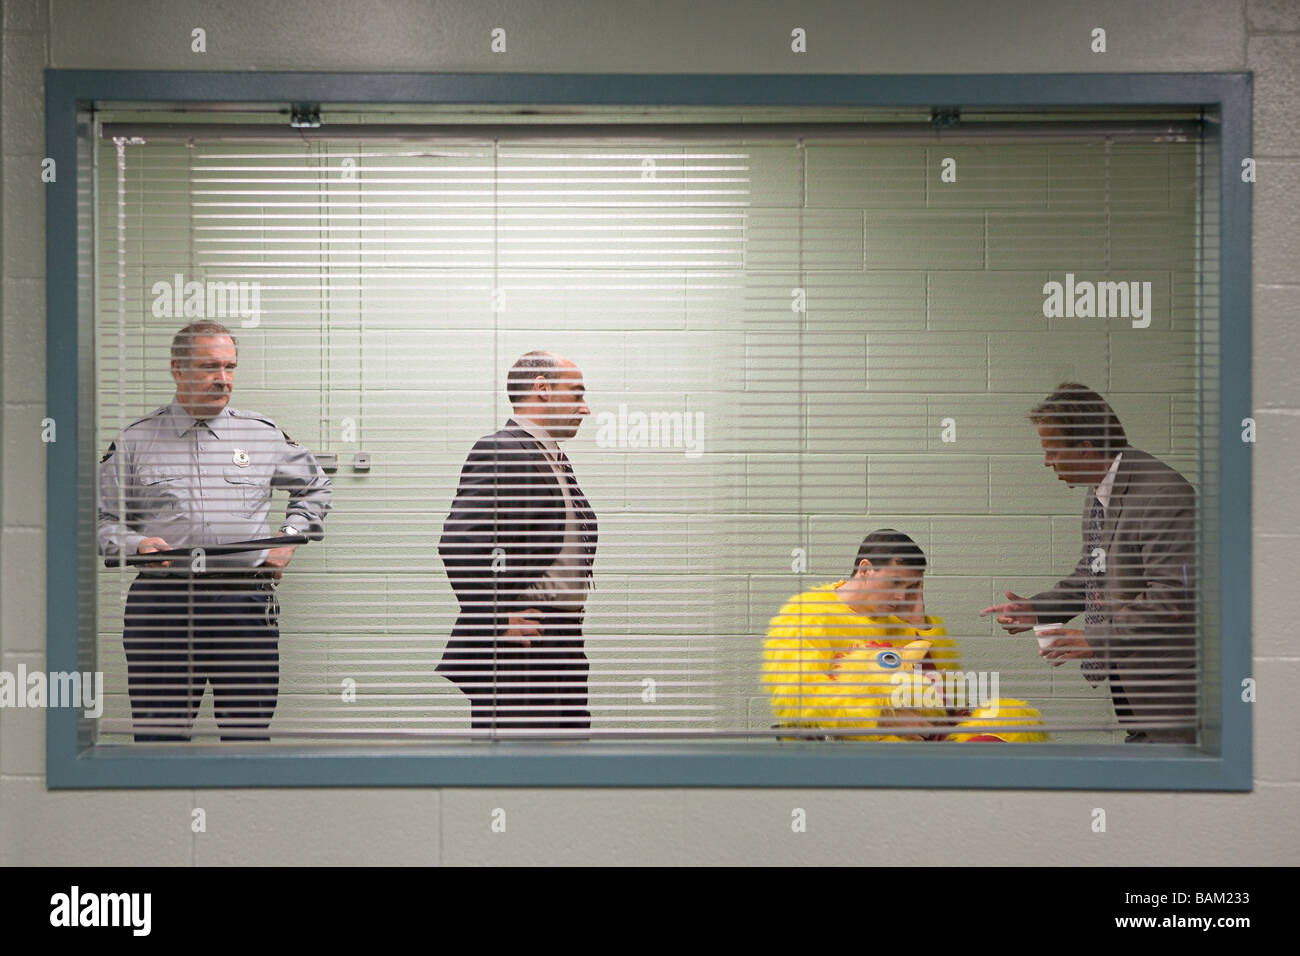 L'homme en costume dans l'interview de police de poulet Photo Stock